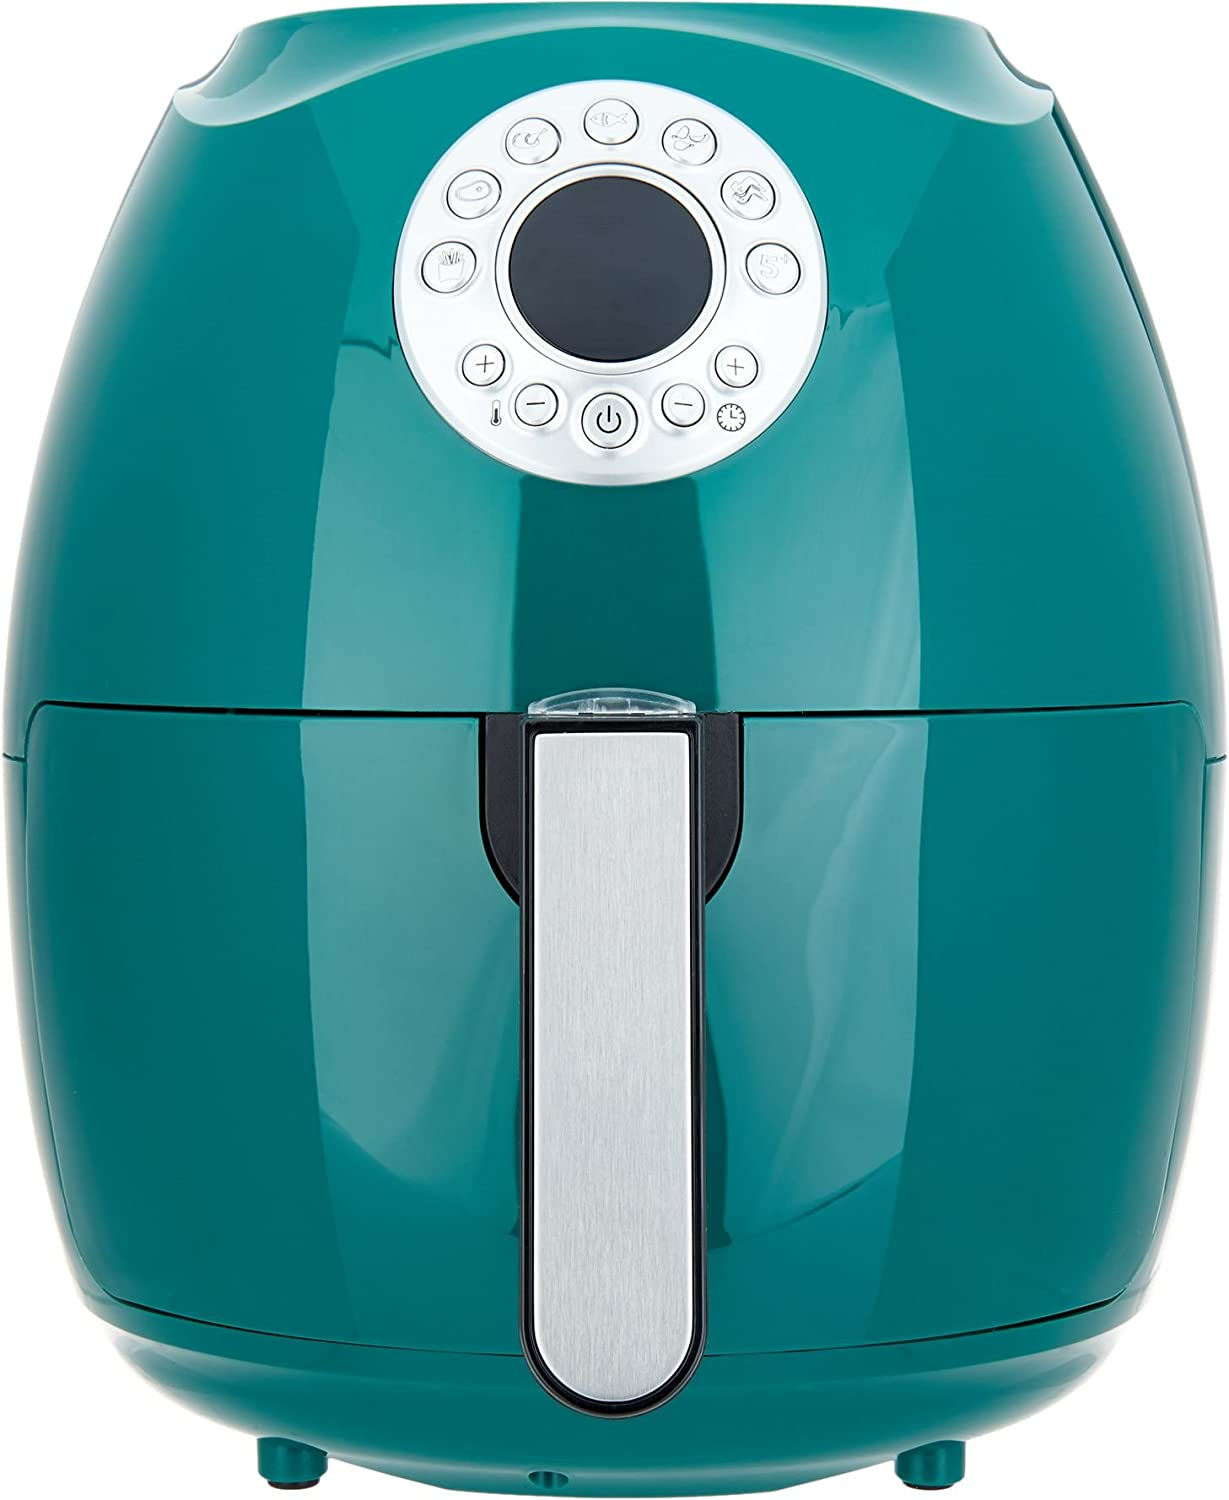 "Cook's Essentials 600187470315 3.4-qt Digital Air Fryer w/Presets & Pans (Green), 12-1/2""H x 10-1/2""Diam, Weighs 9 lbs"